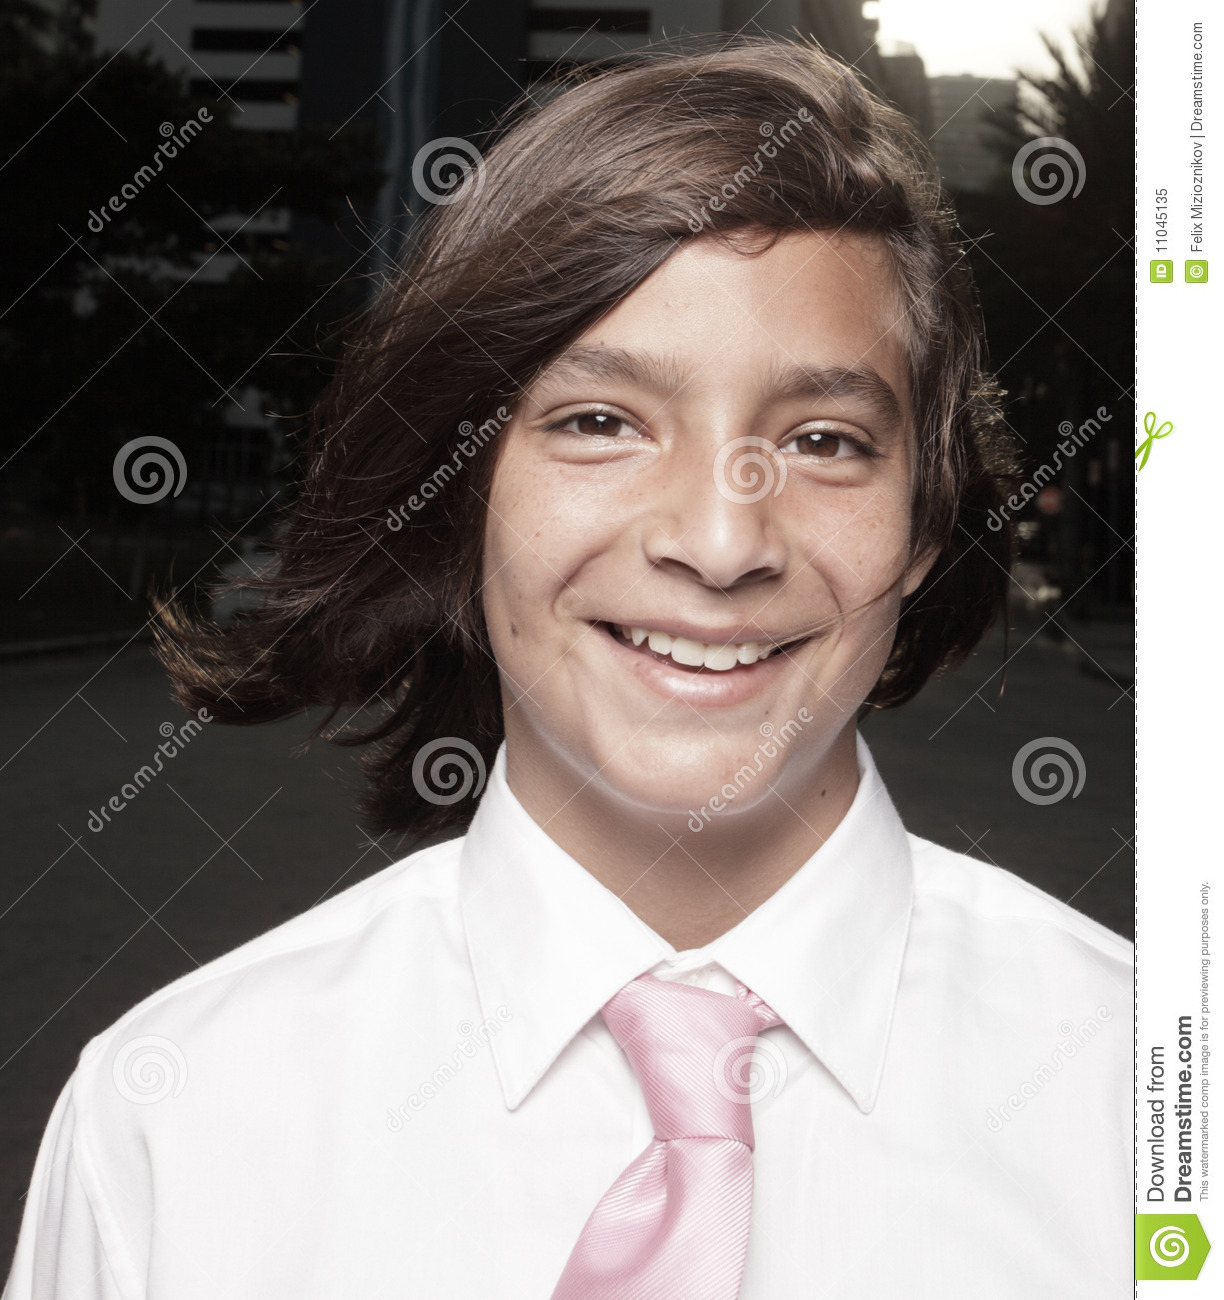 Young Happy Boy With Brown Wet Hair Is Smiling And: Headshot Of A Young Businessman Stock Image